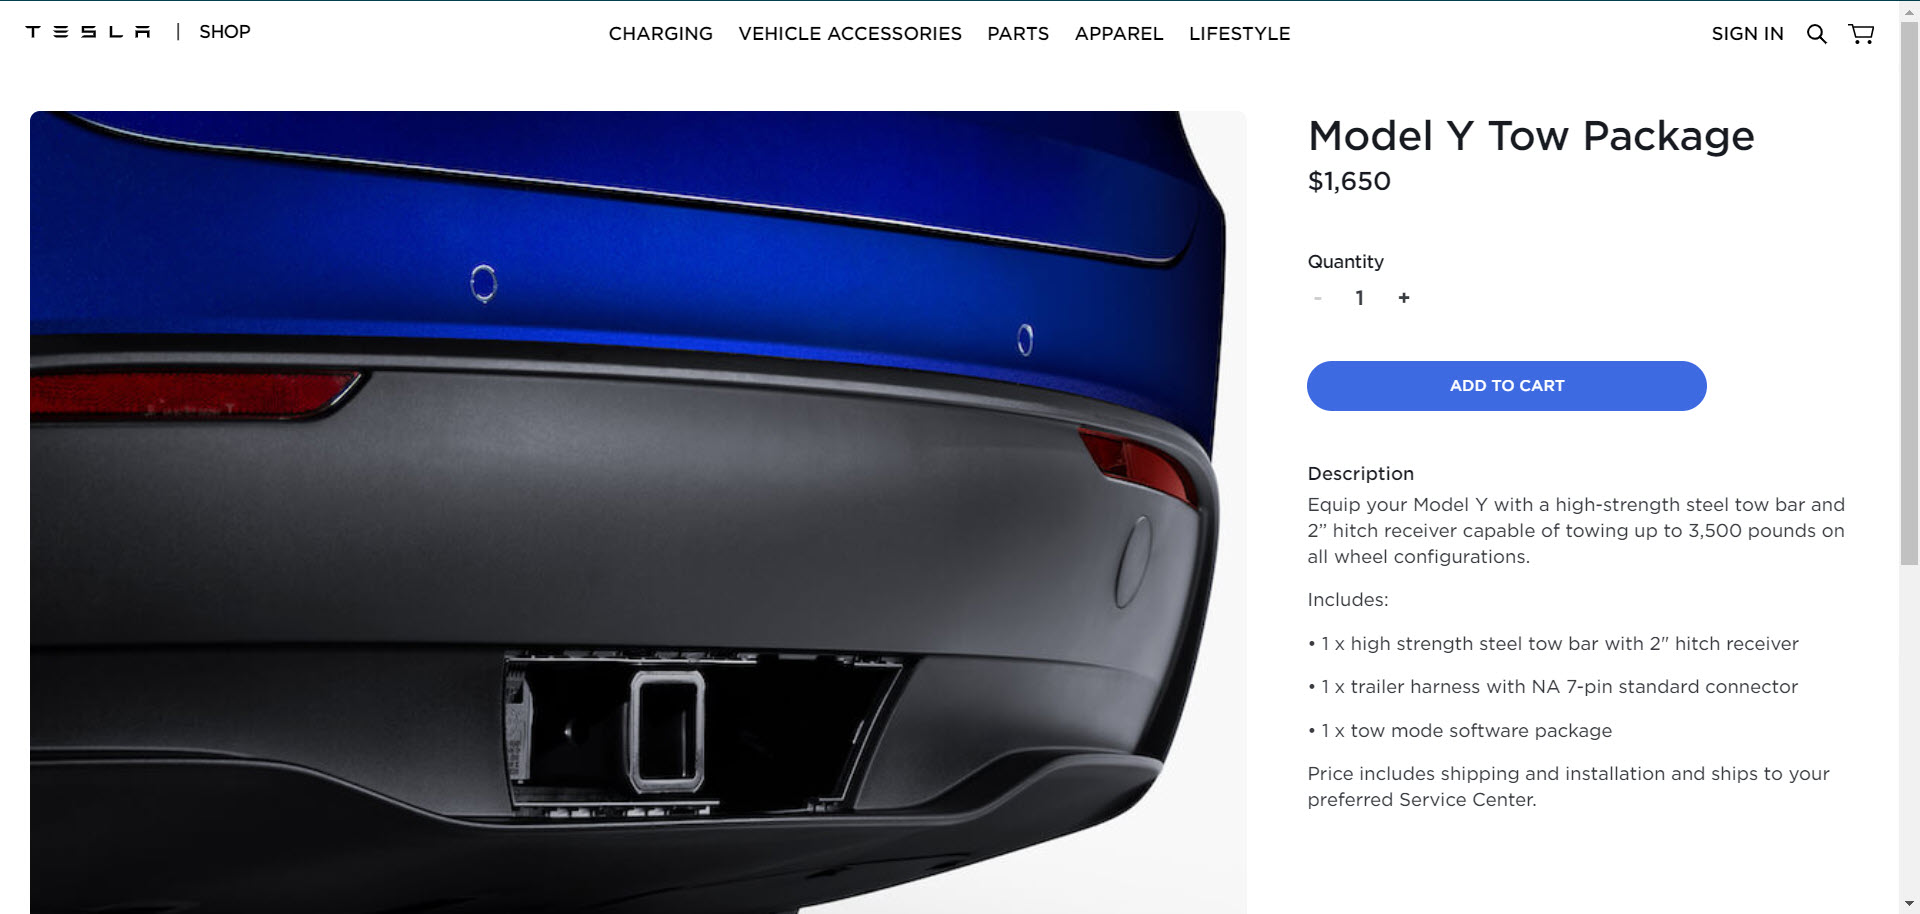 Tesla updated tow package